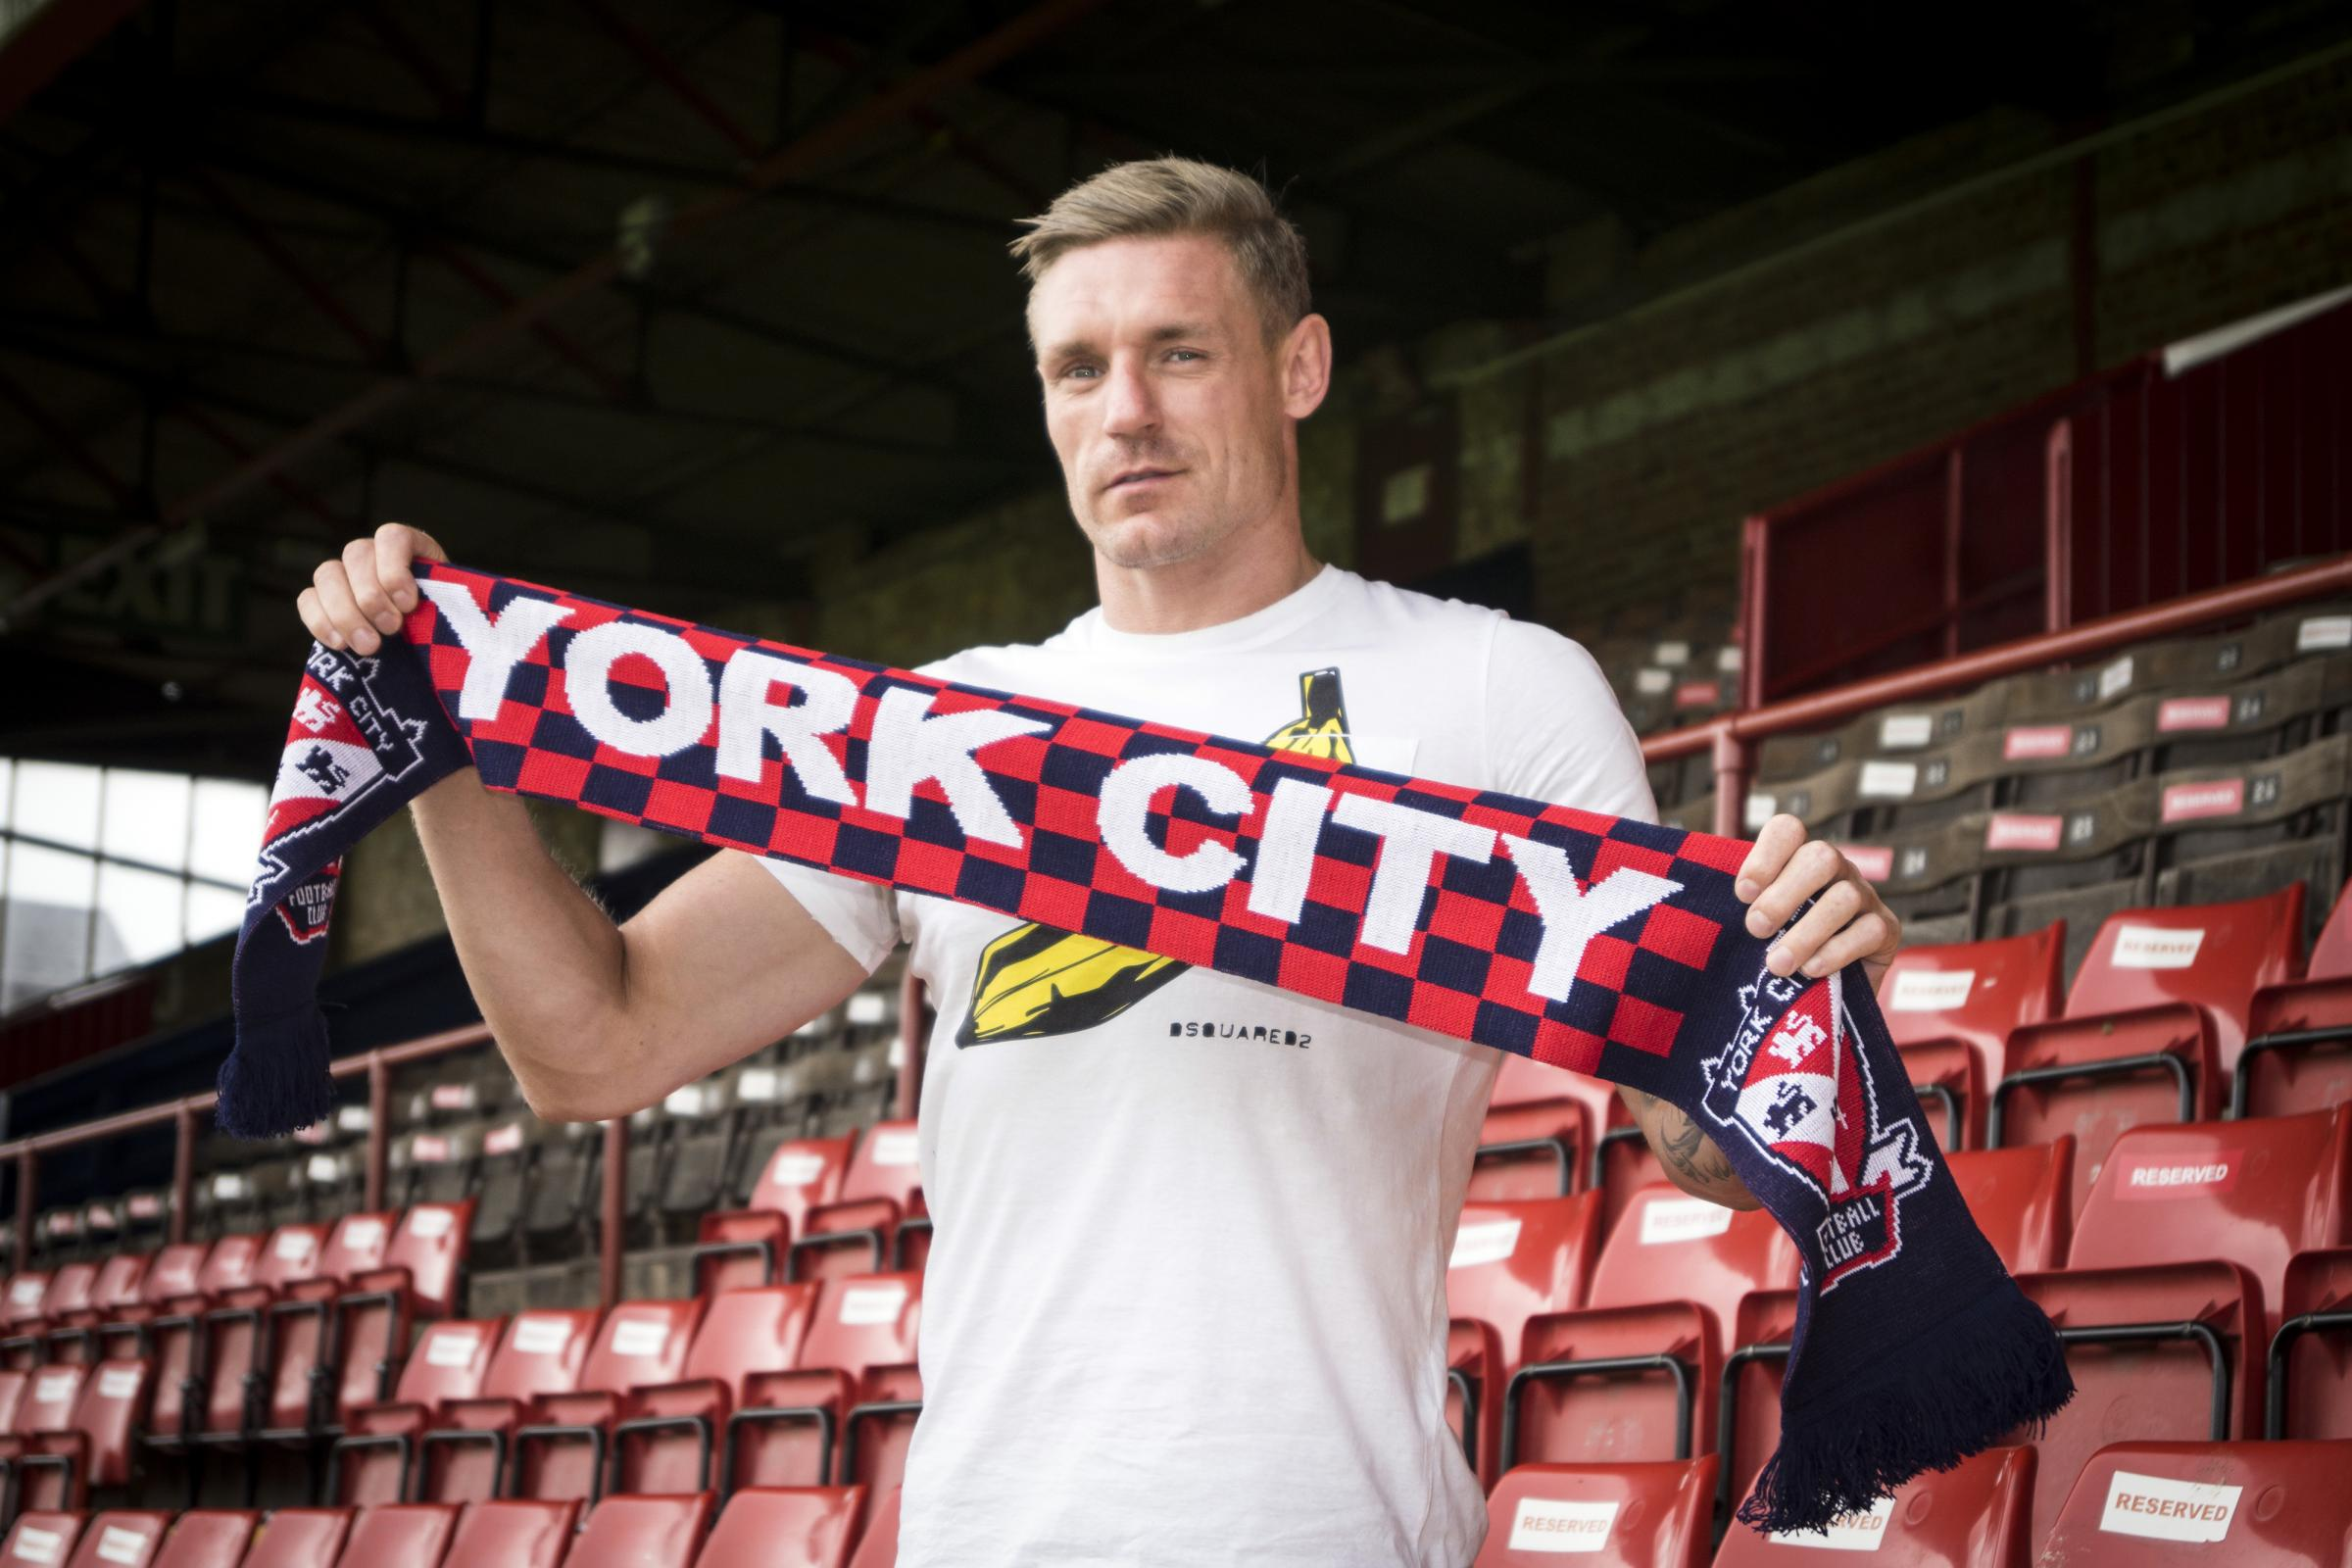 IN FOR KEEPS: Jon Worsnop has signed for York City, while fellow keepers Kyle Letheren and Luke Simpson will be moving on. Picture: Ian Parker